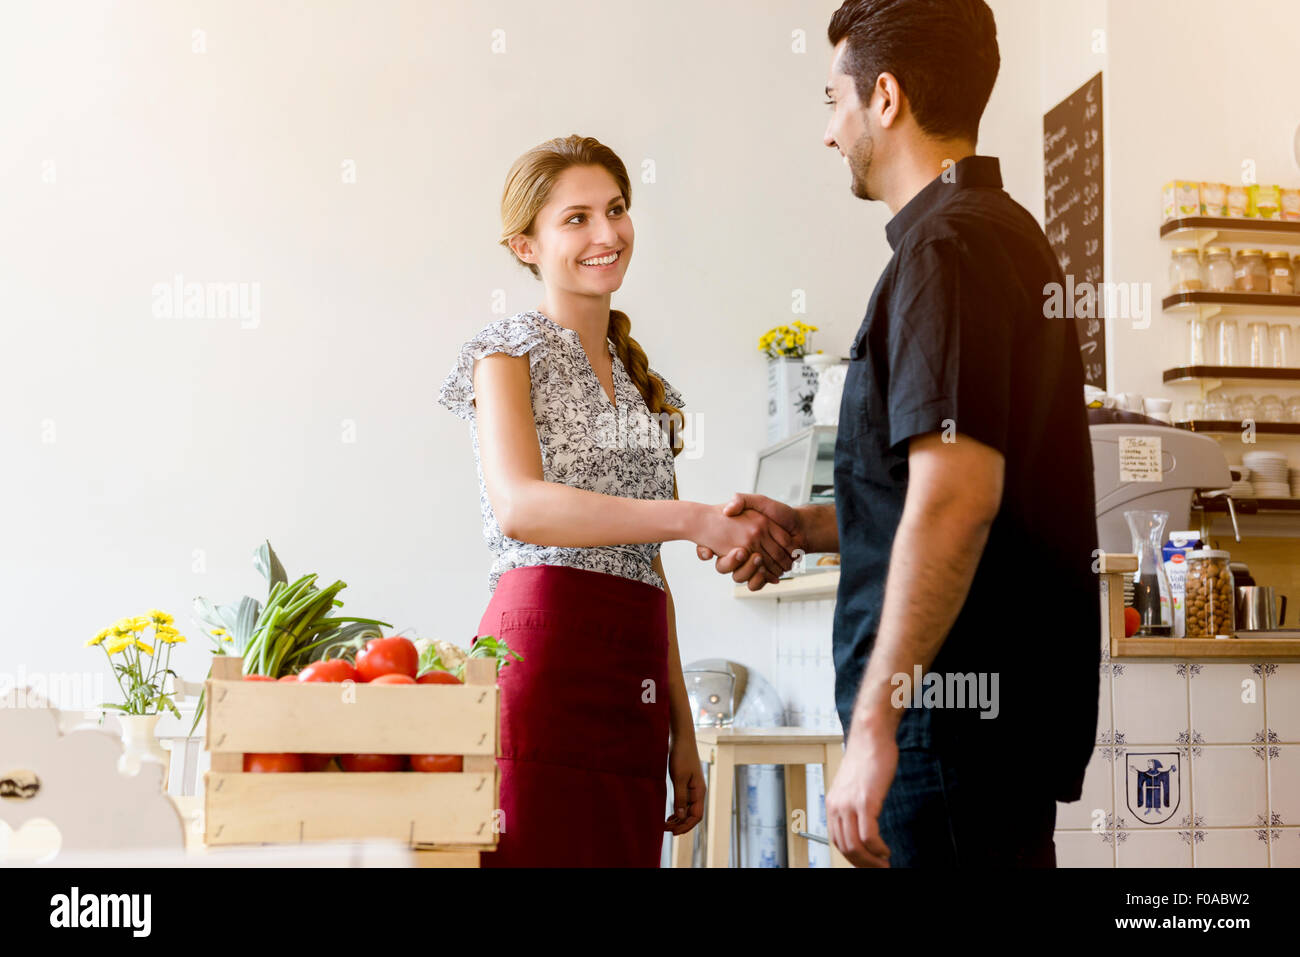 Young woman shaking mans hand - Stock Image